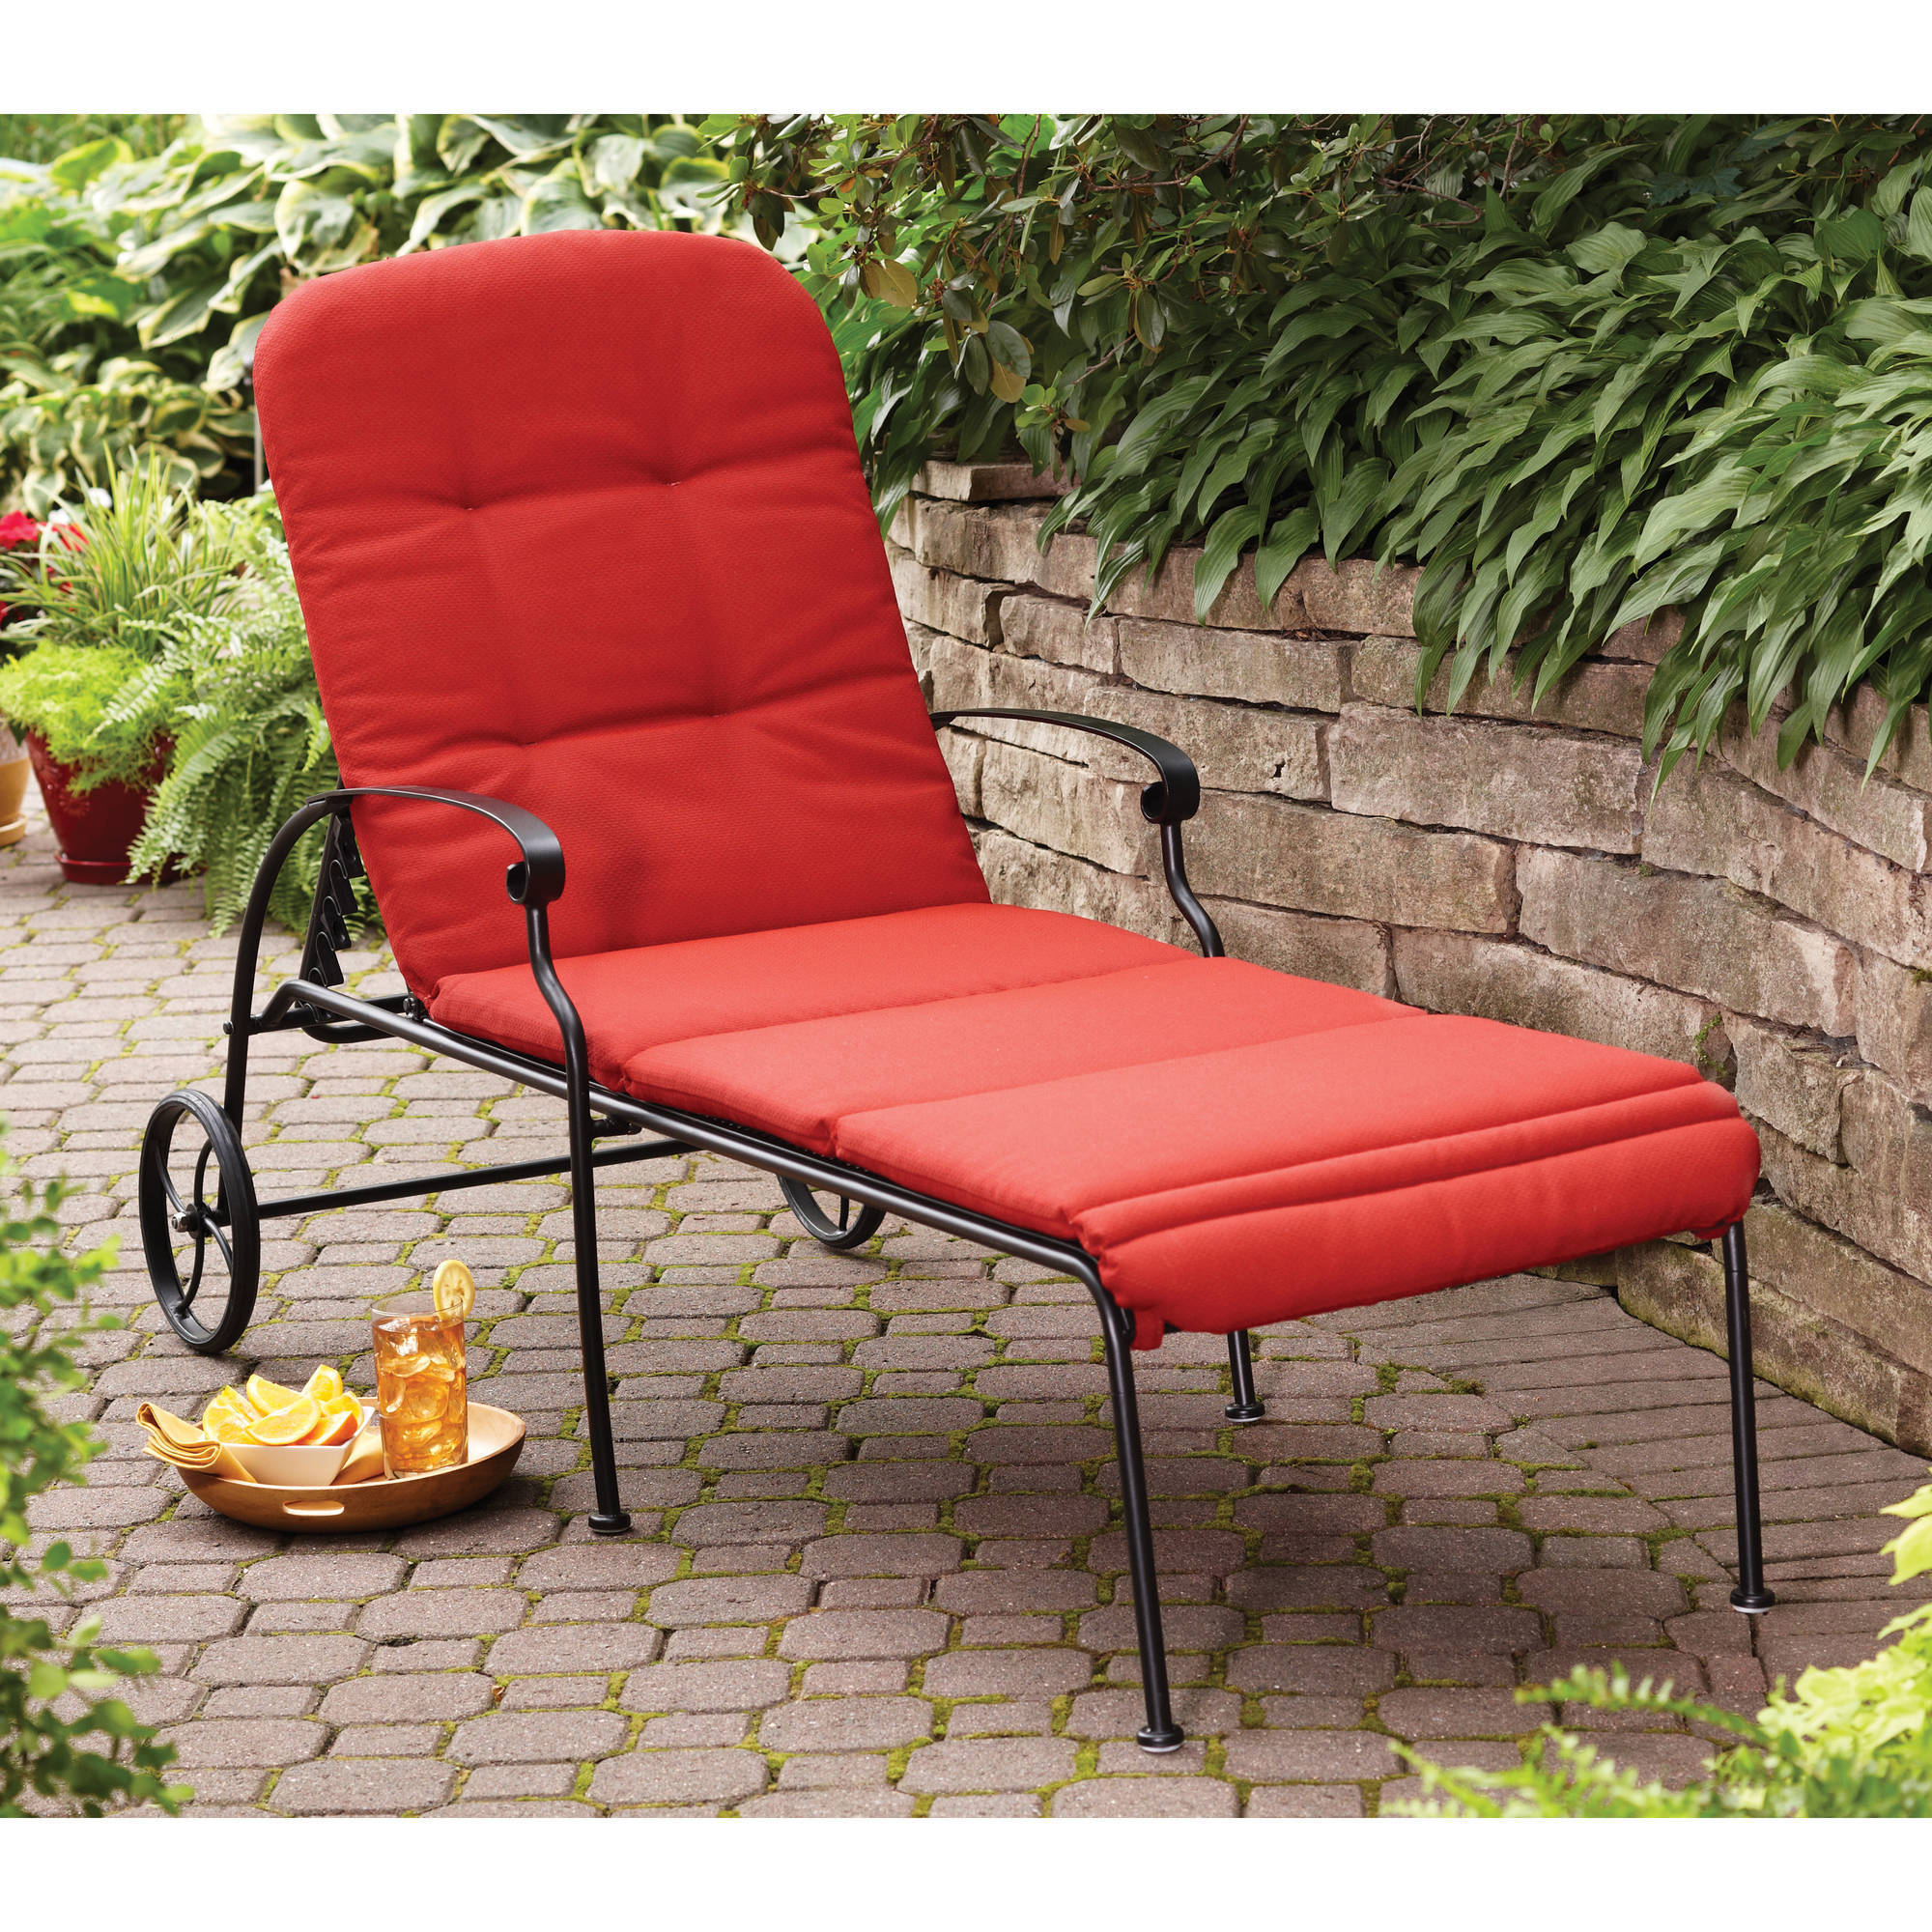 Better Homes & Gardens Clayton Court Chaise Lounge with Wheels, Red